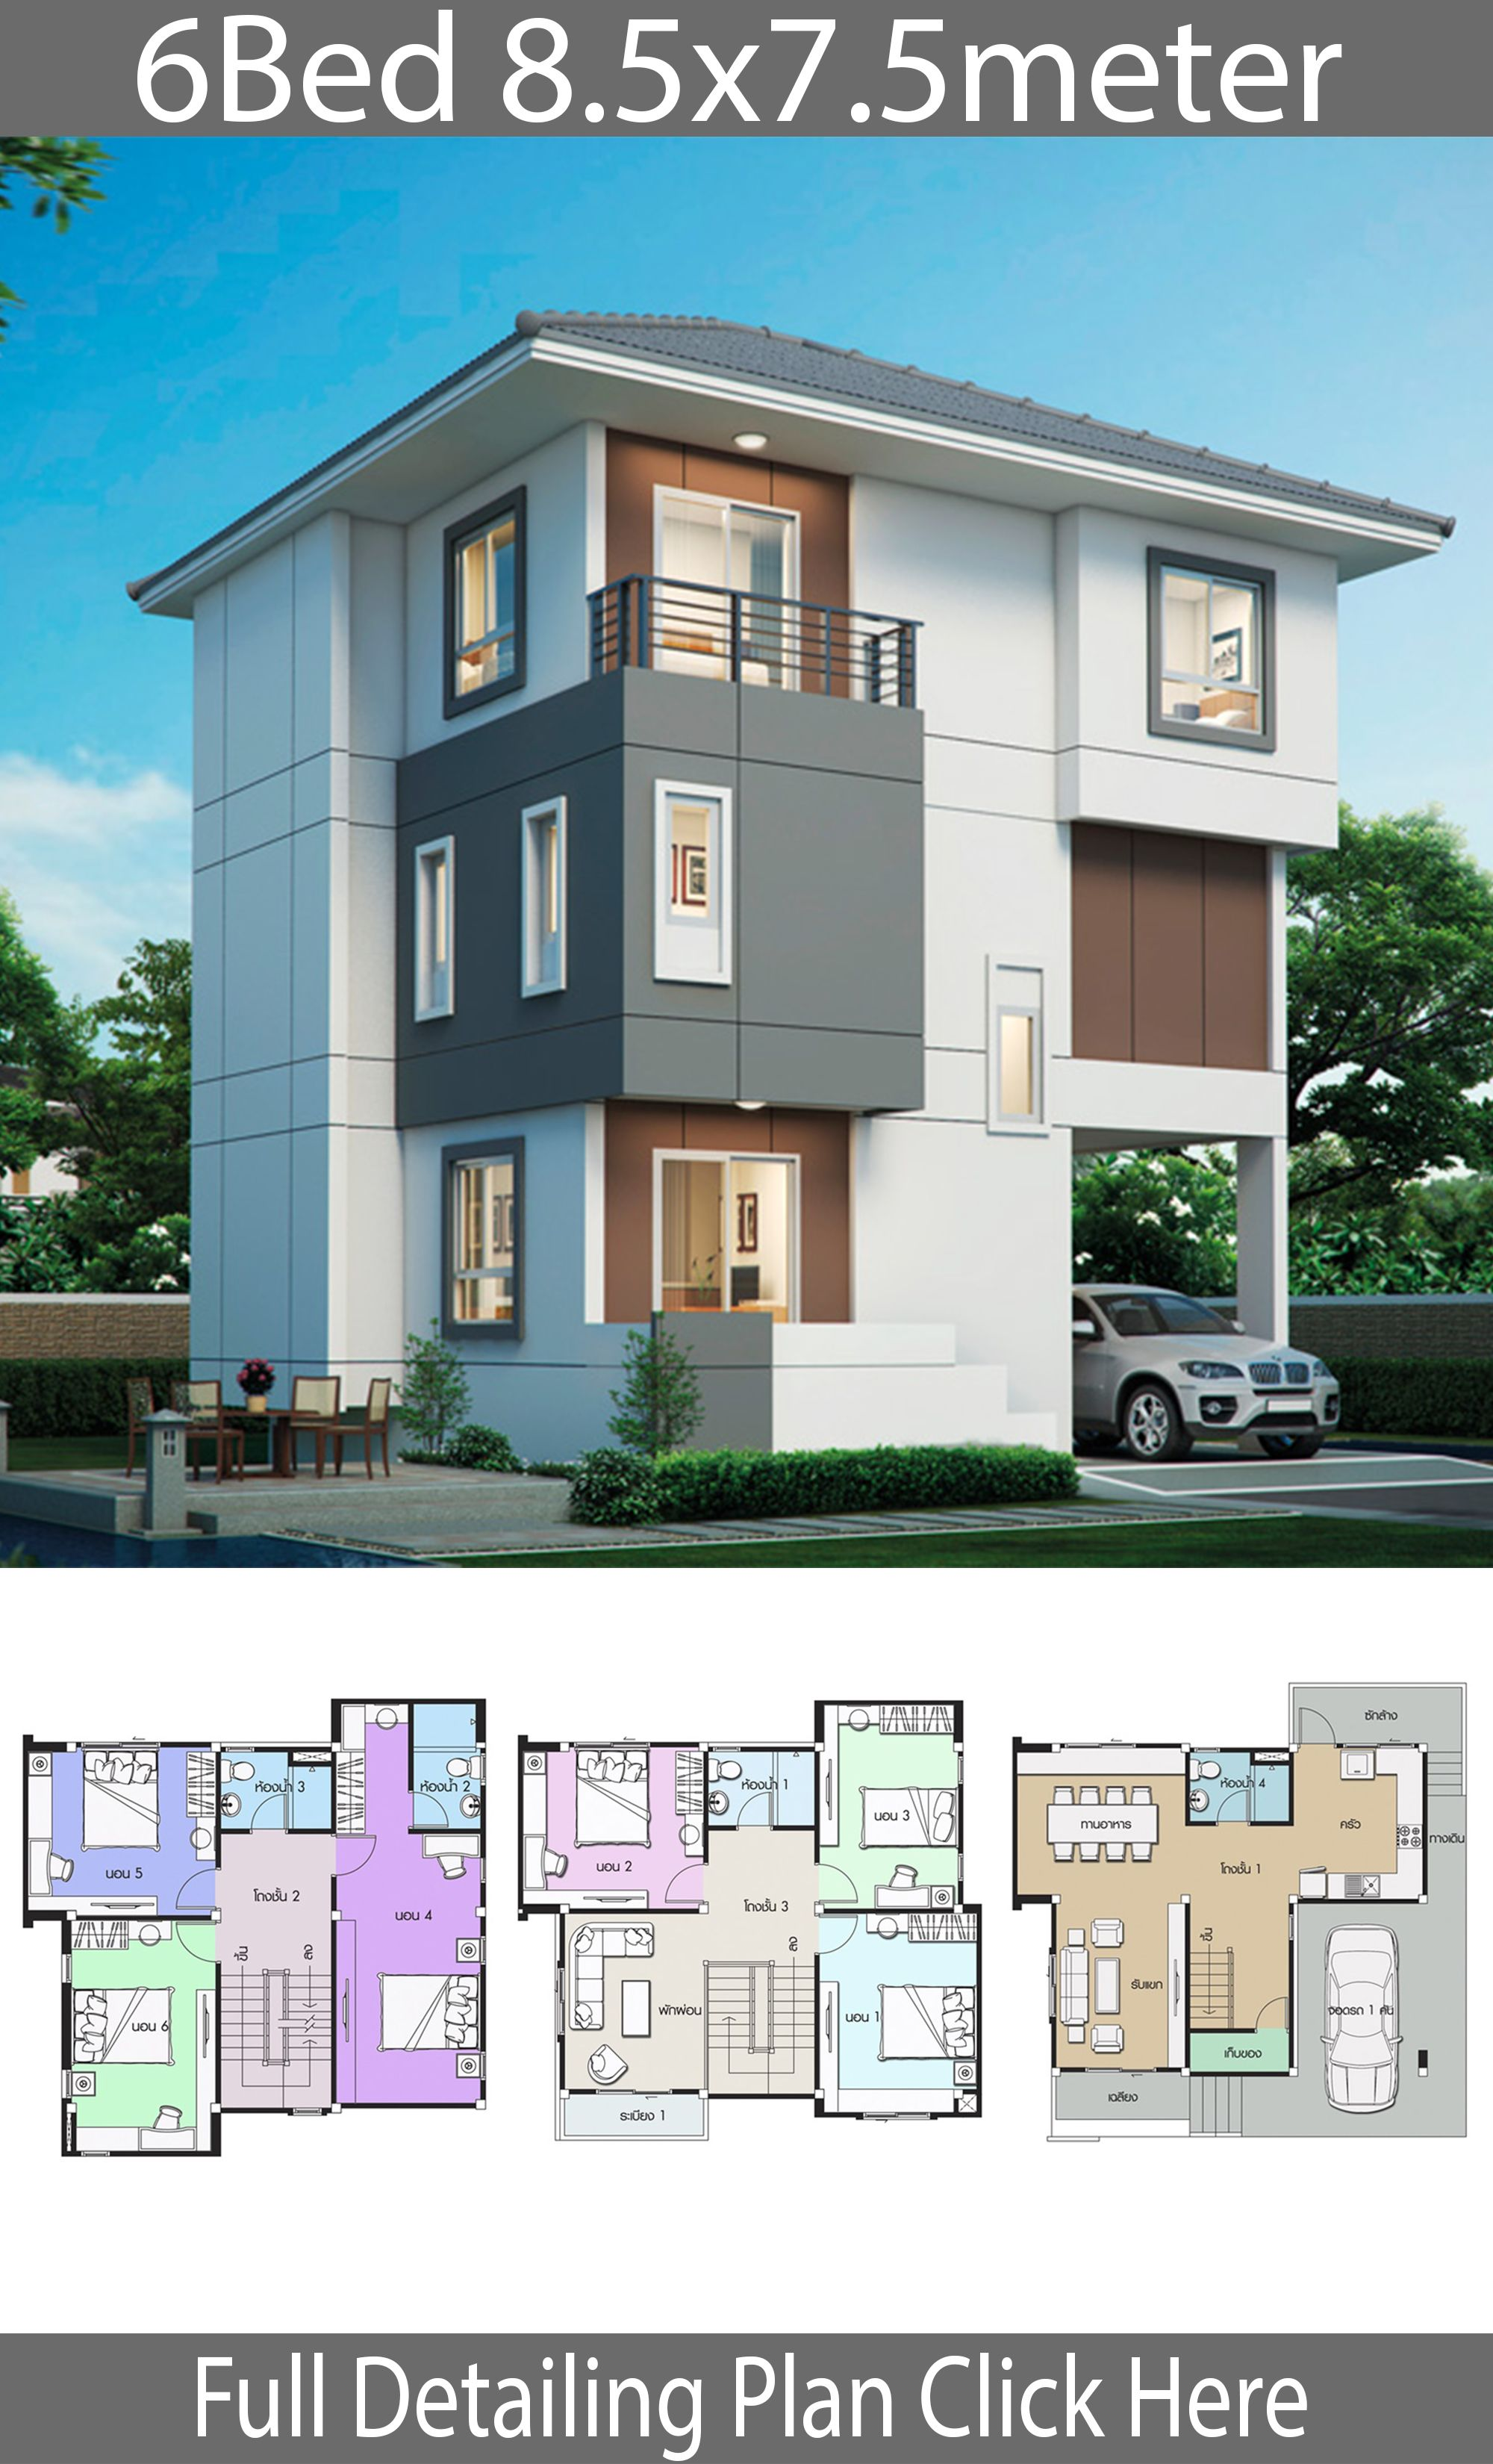 House Design Plan 8 5x7 5m With 6 Bedrooms House Idea In 2020 House Plan Gallery House Designs Exterior Duplex House Design